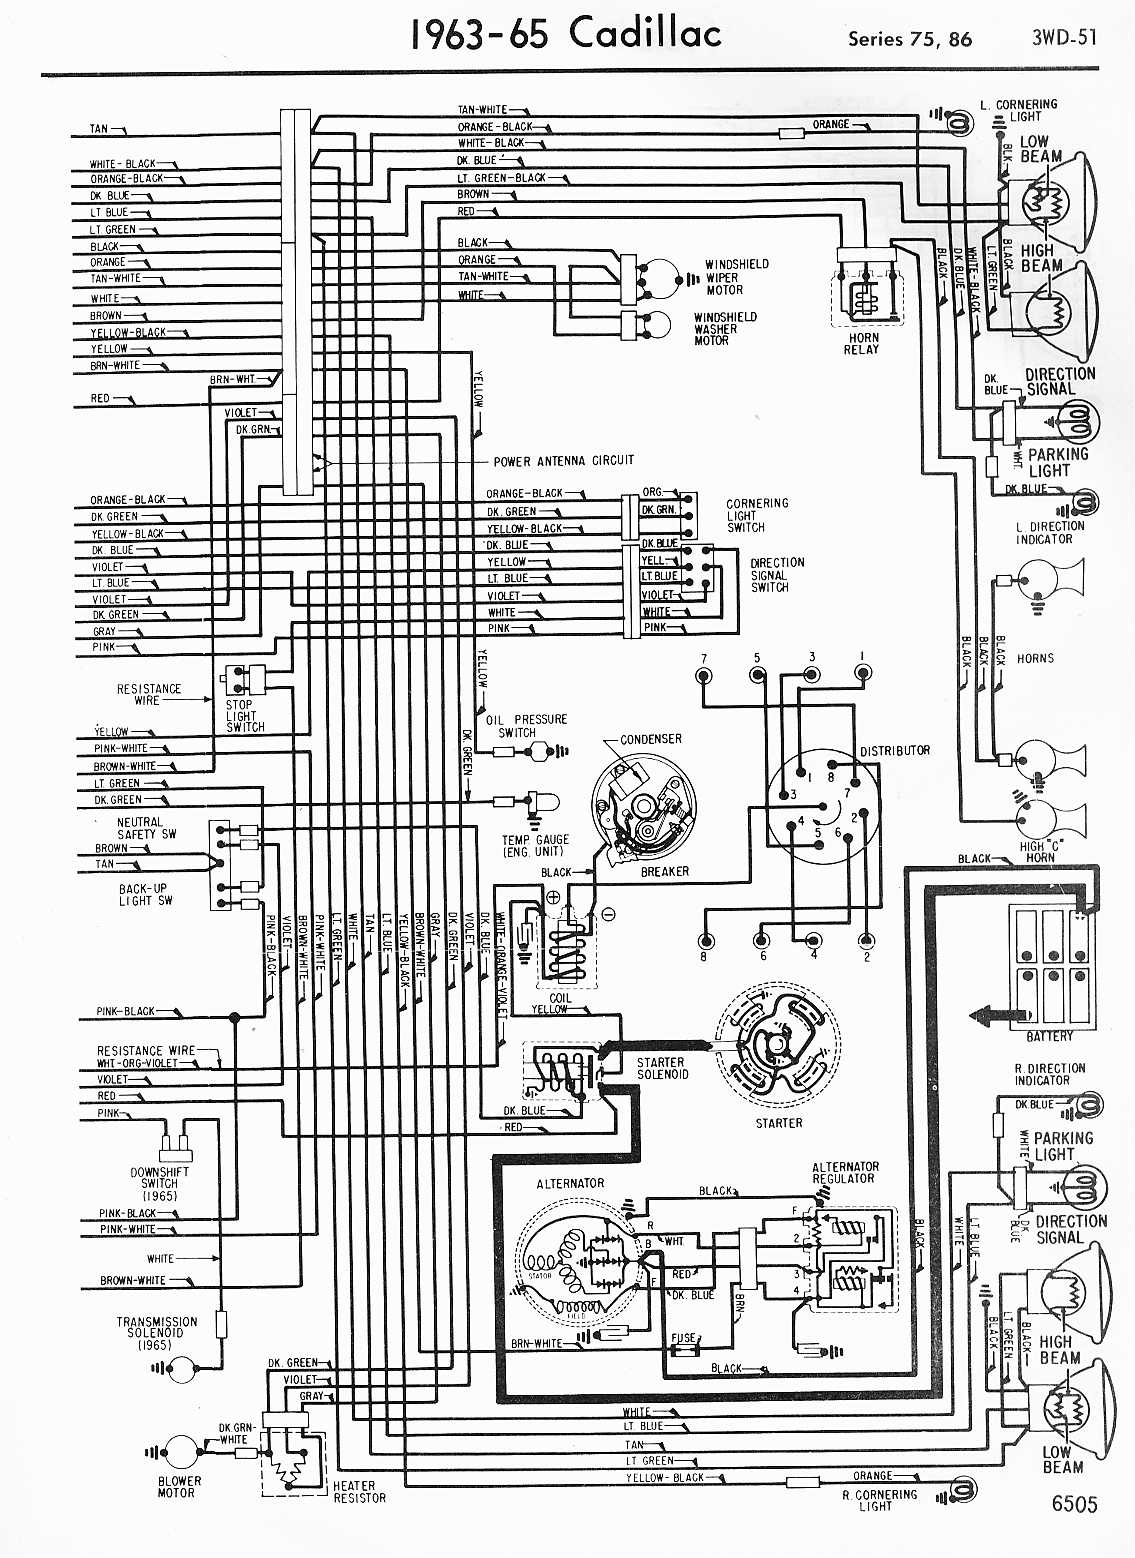 Cadillac Deville Wiring Diagram Trusted 1991 Fuse Box Diagrams 1957 1965 Cooling System